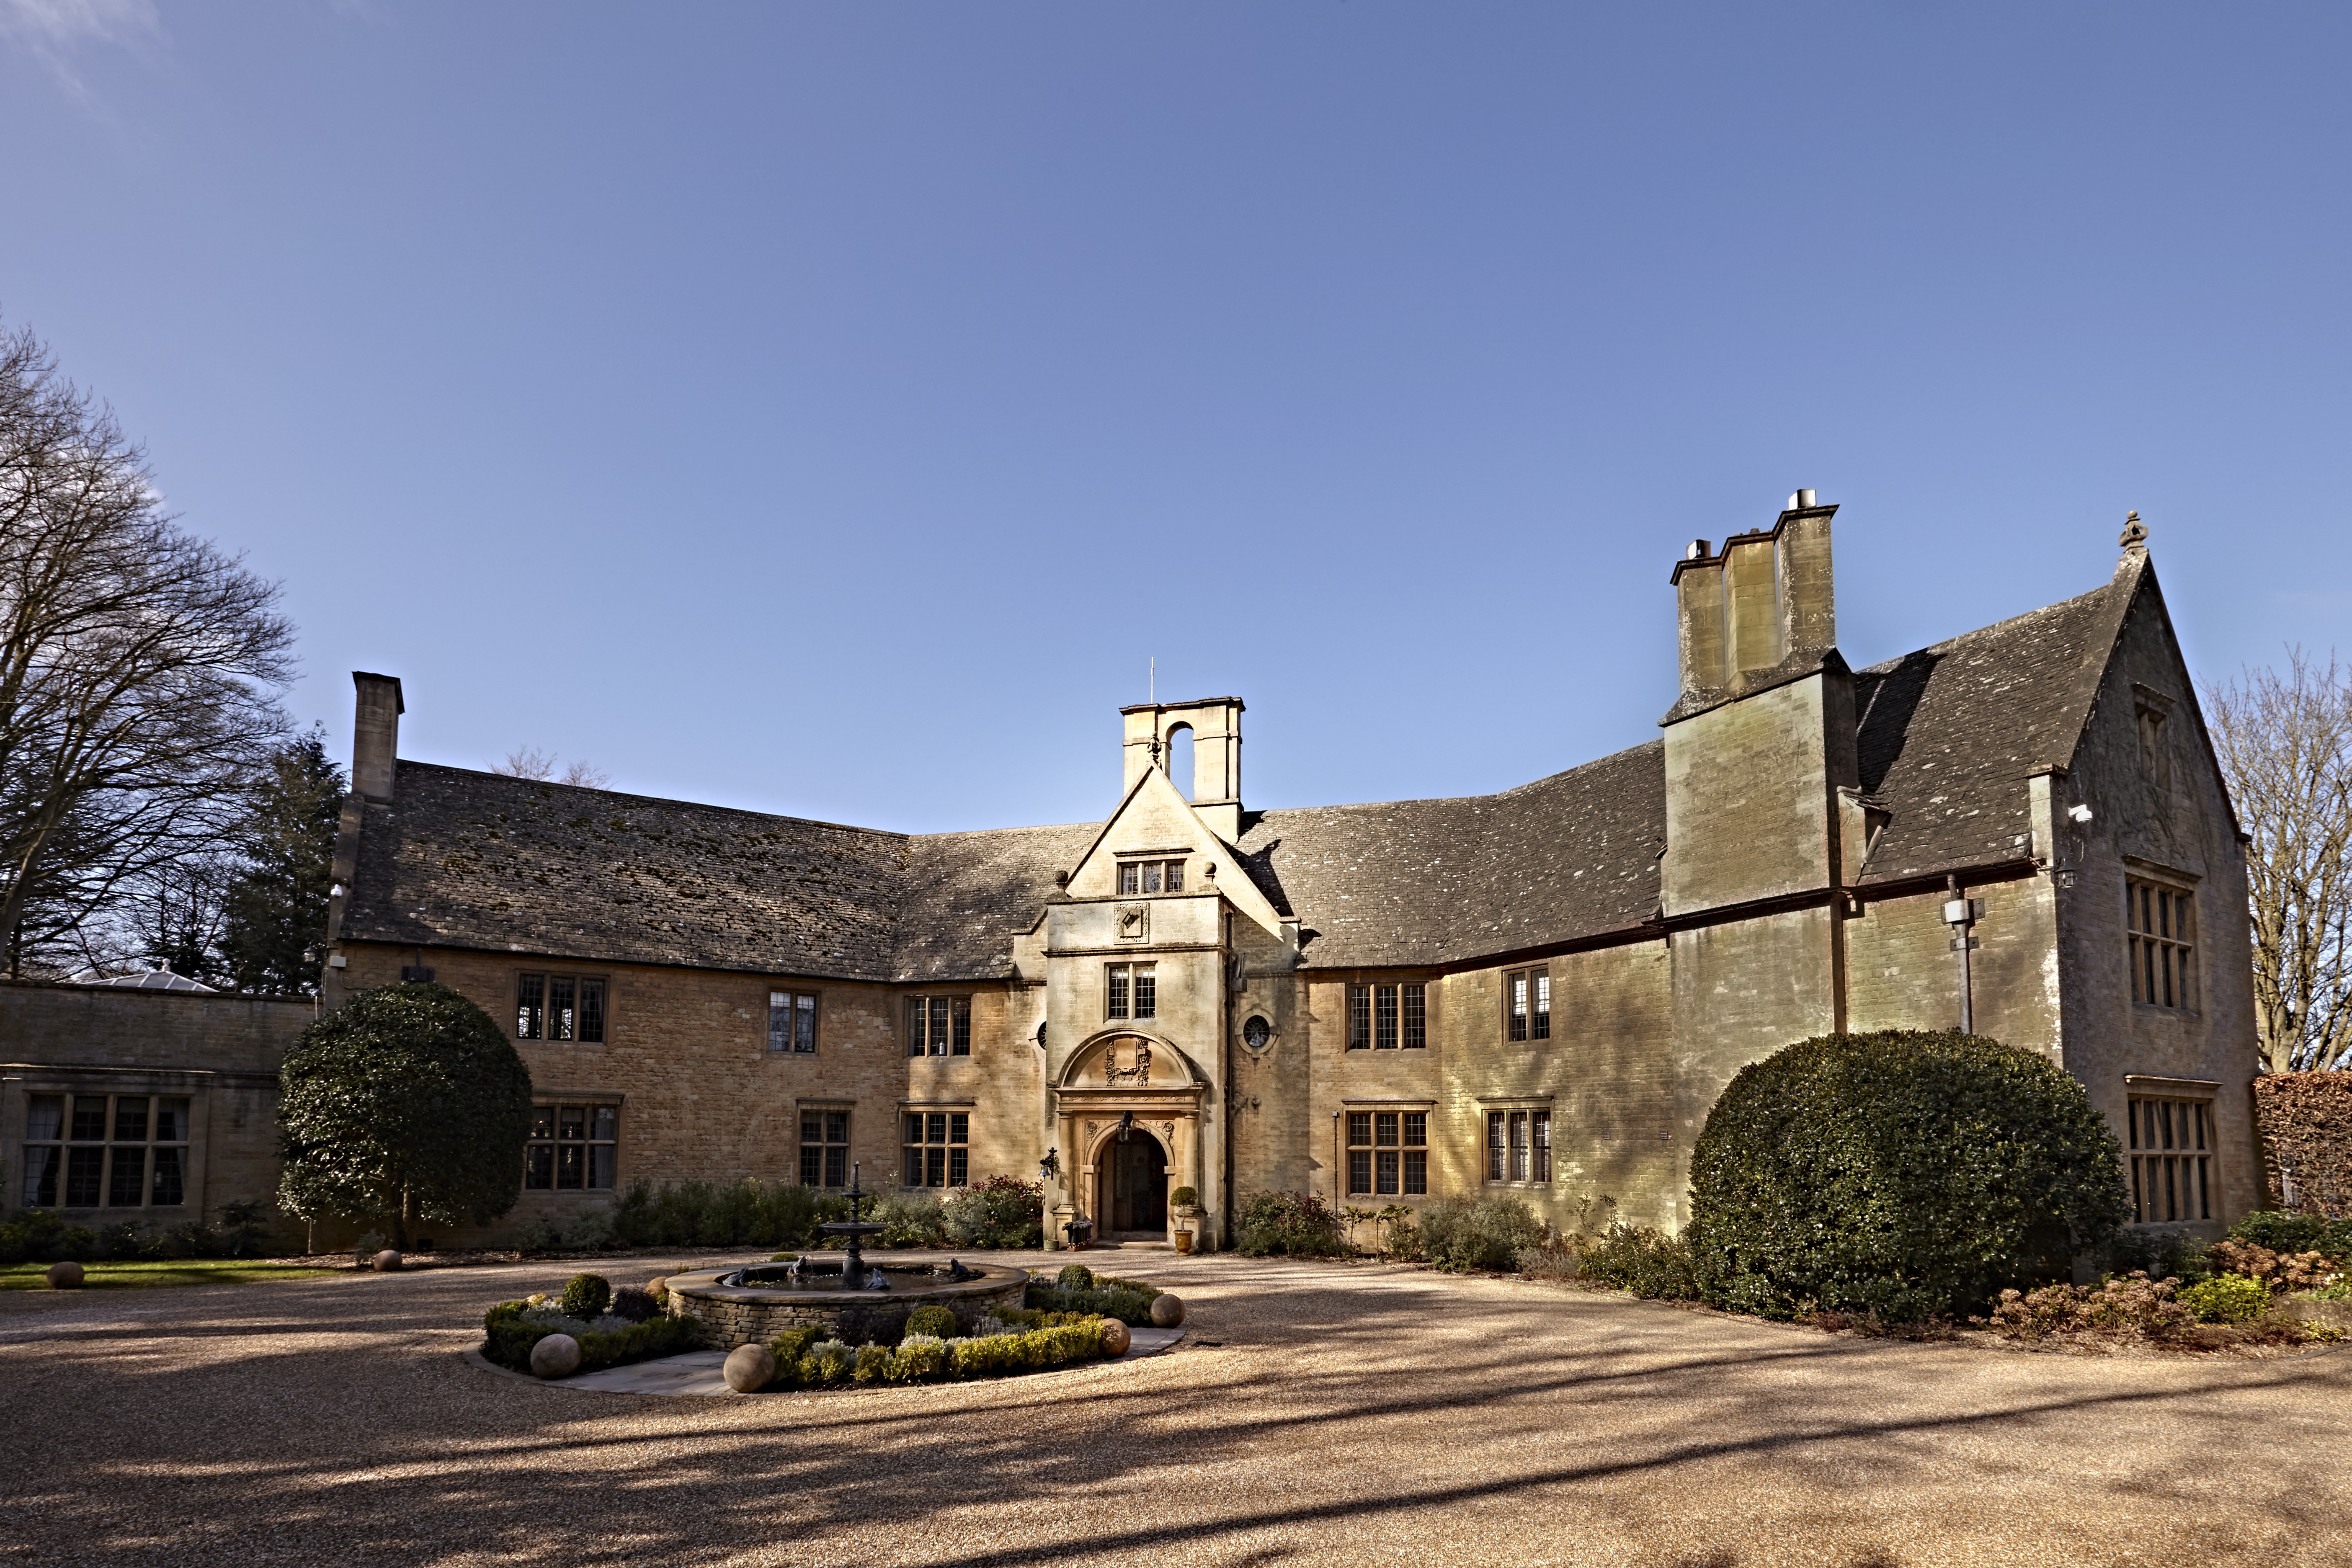 Foxhill Manor - one of 10 Romantic places to stay in the Cotswolds